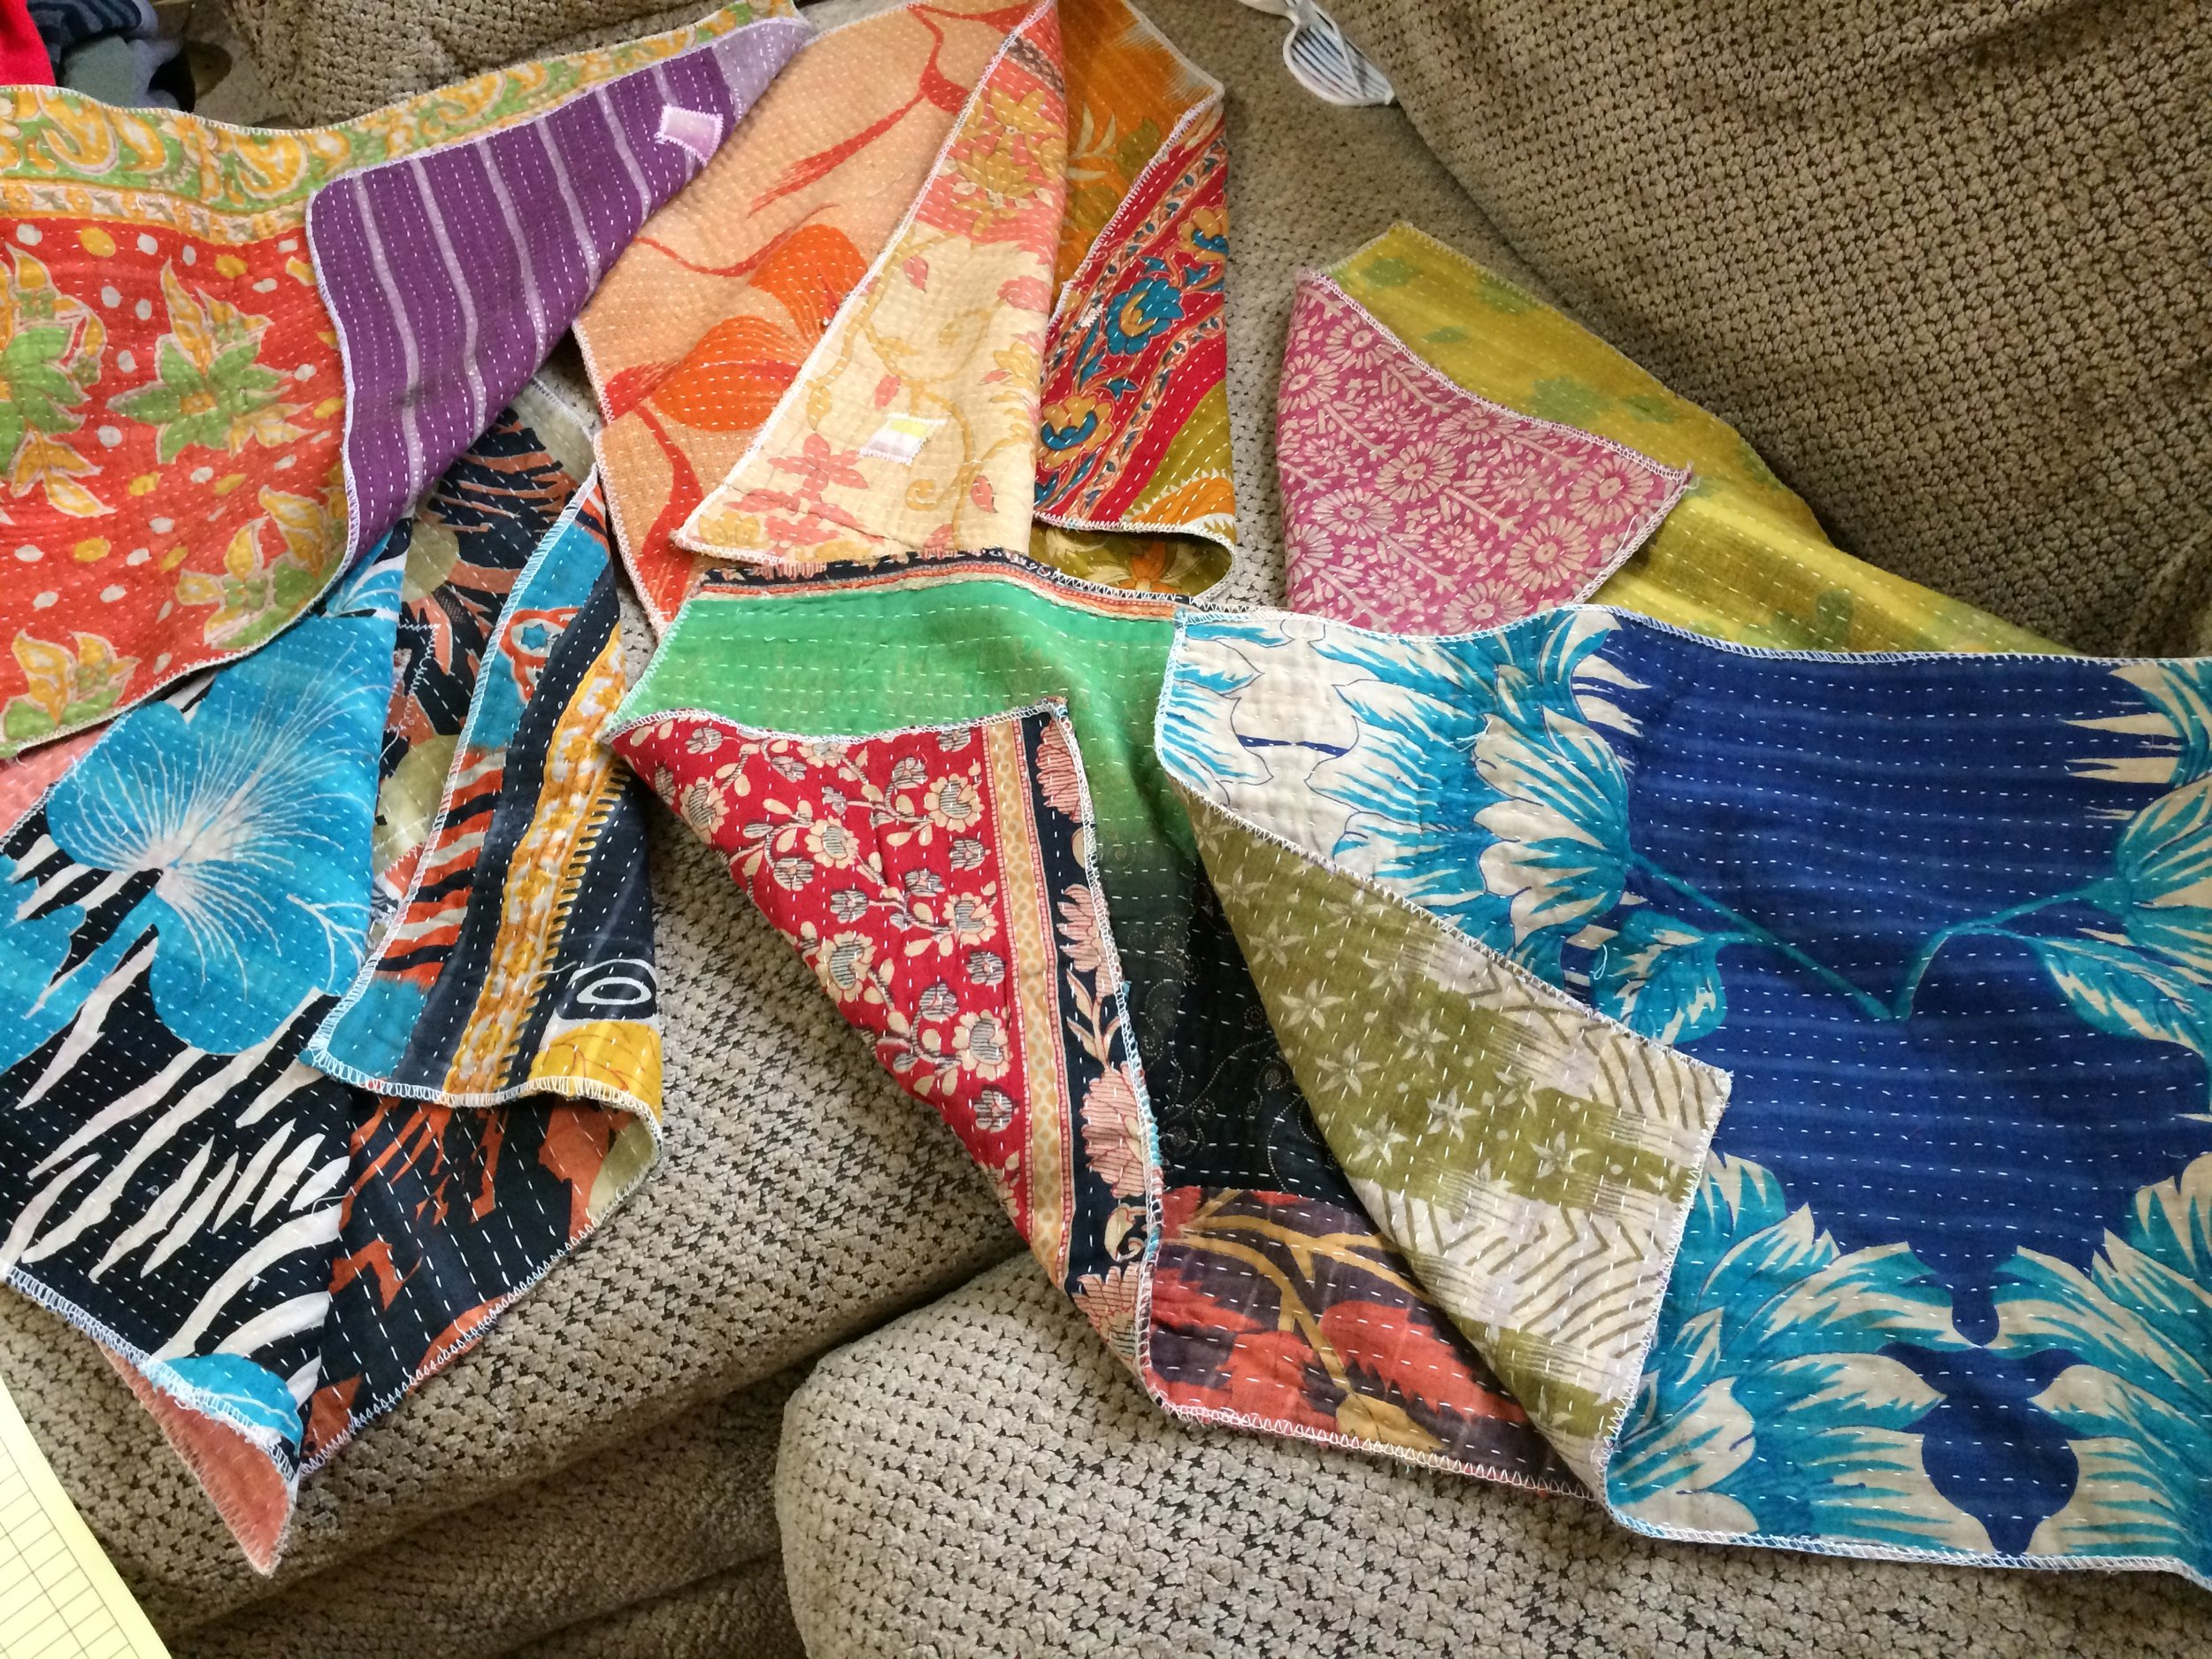 Indian Kantha Placemats restocked!  I have 2 sets of 4 available, $30 each plus ship. ON ETSY. https://www.etsy.com/listing/499015843/assorted-india-sari-placemat-set-of-4